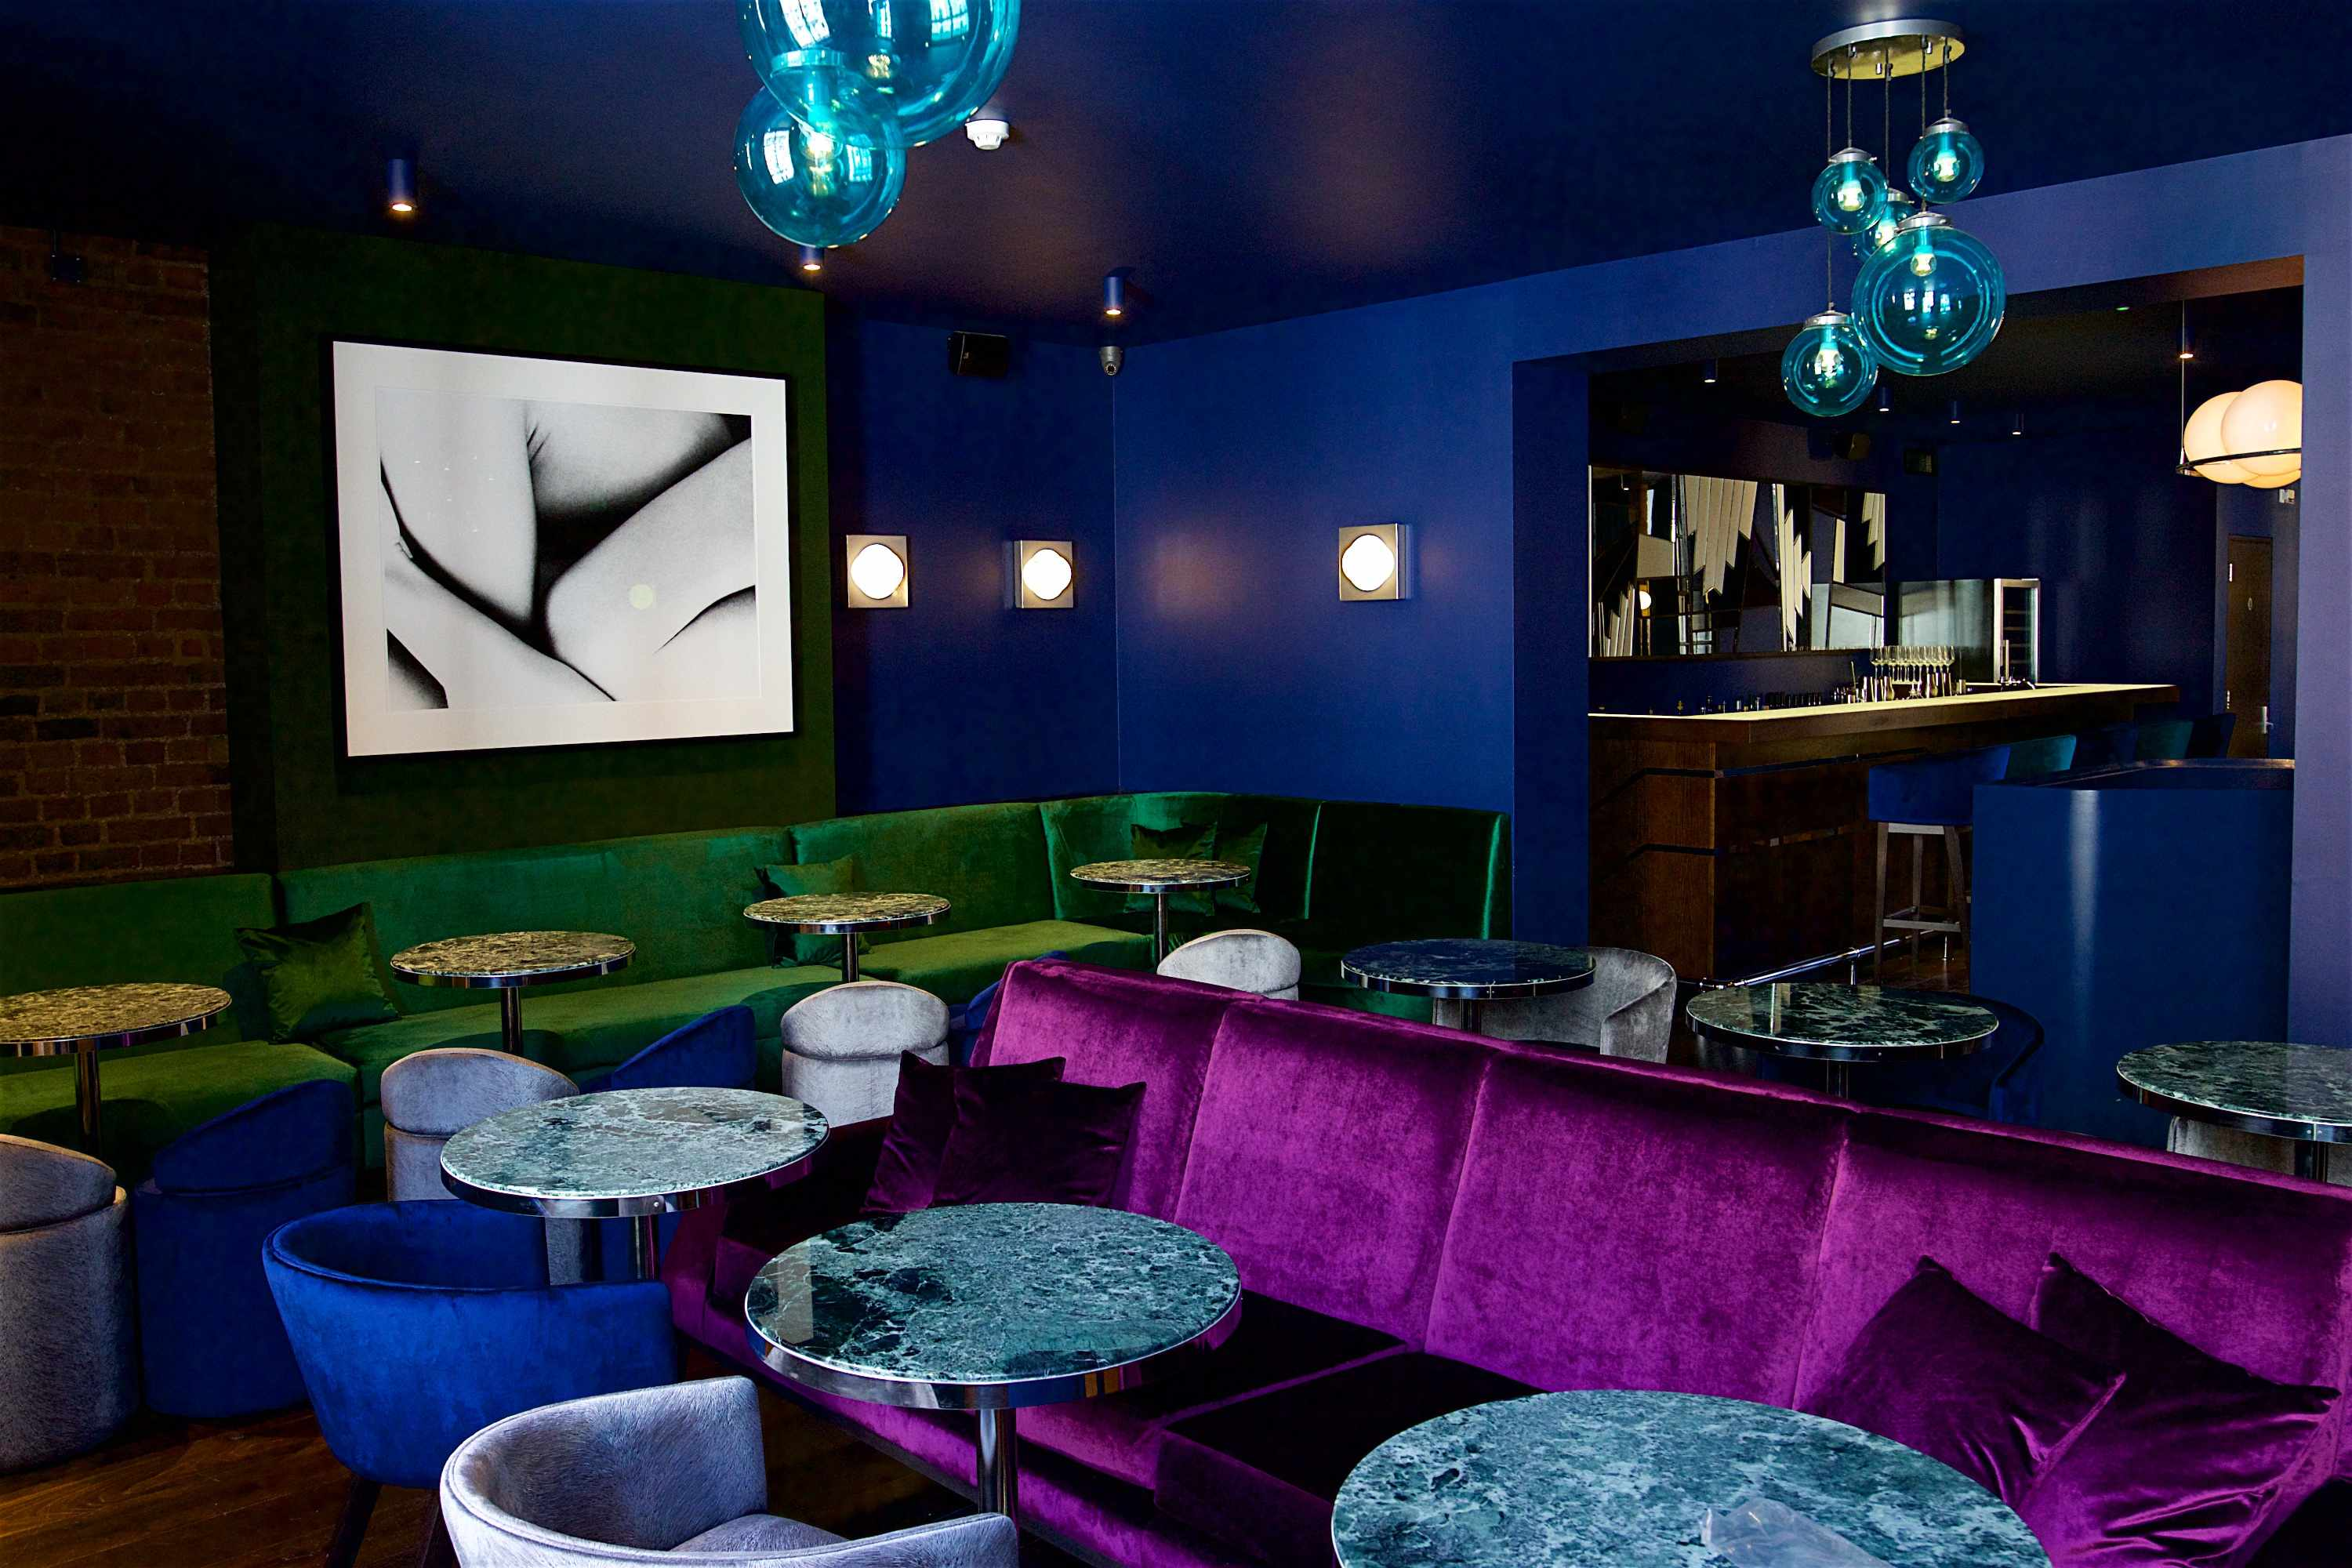 A room with darkly blue walls, purple seating and marble tables